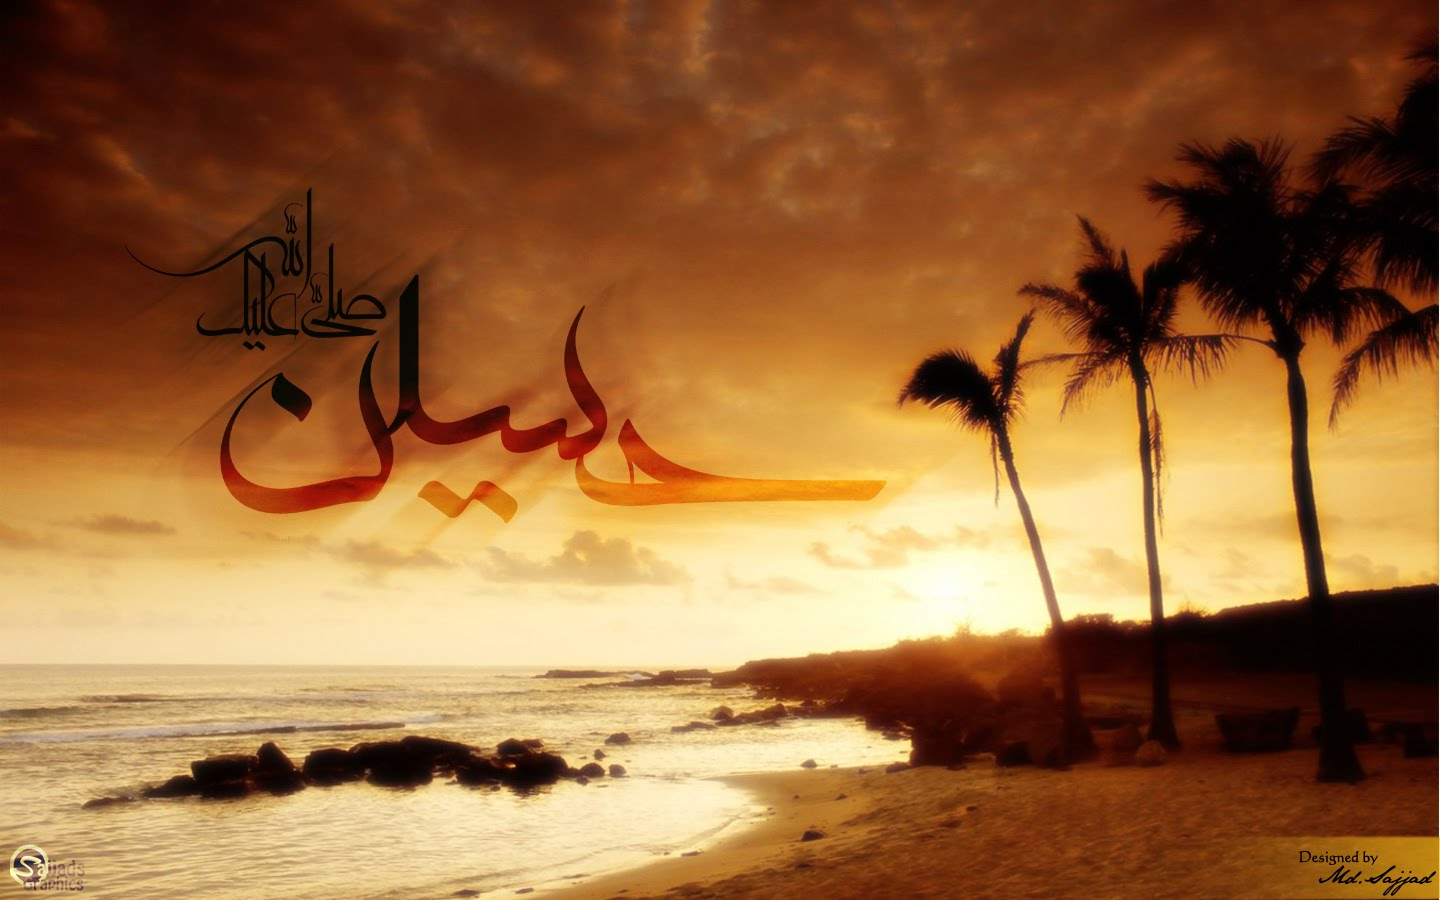 Wallpaper ya hussain wallpaper - Imam wallpaper ...